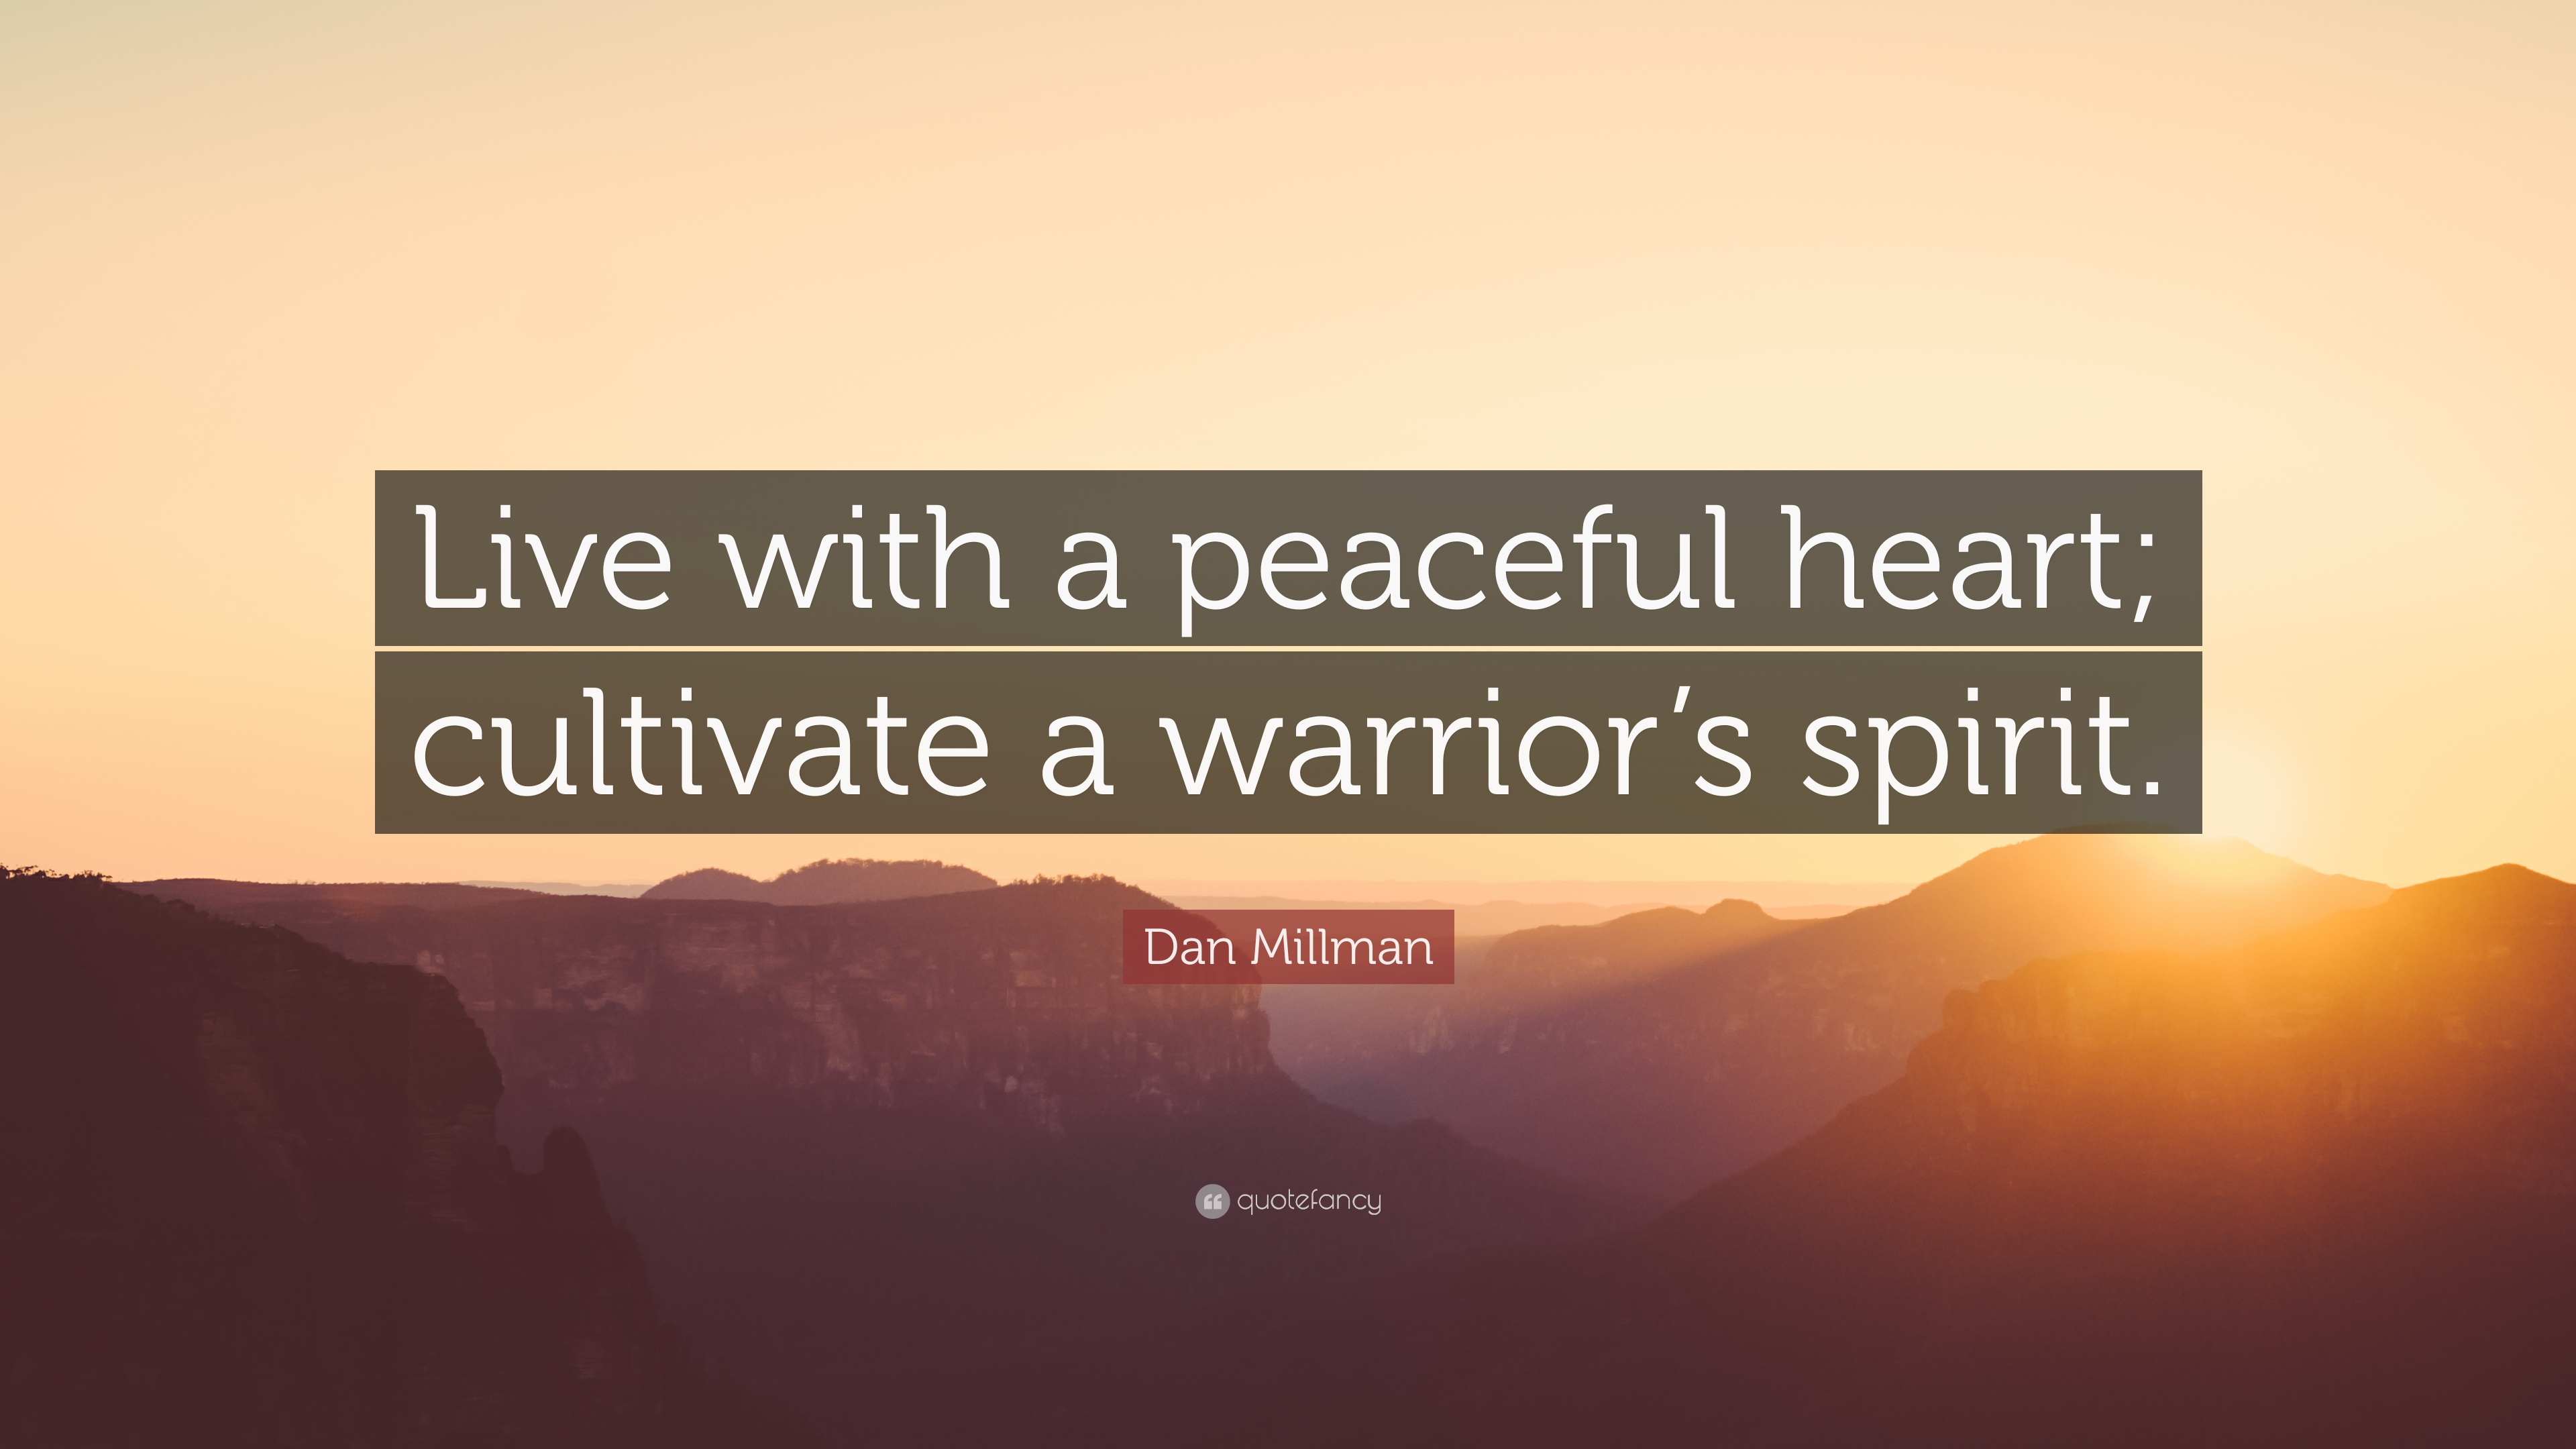 Heart Of A Warrior Quotes: Dan Millman Quotes (100 Wallpapers)